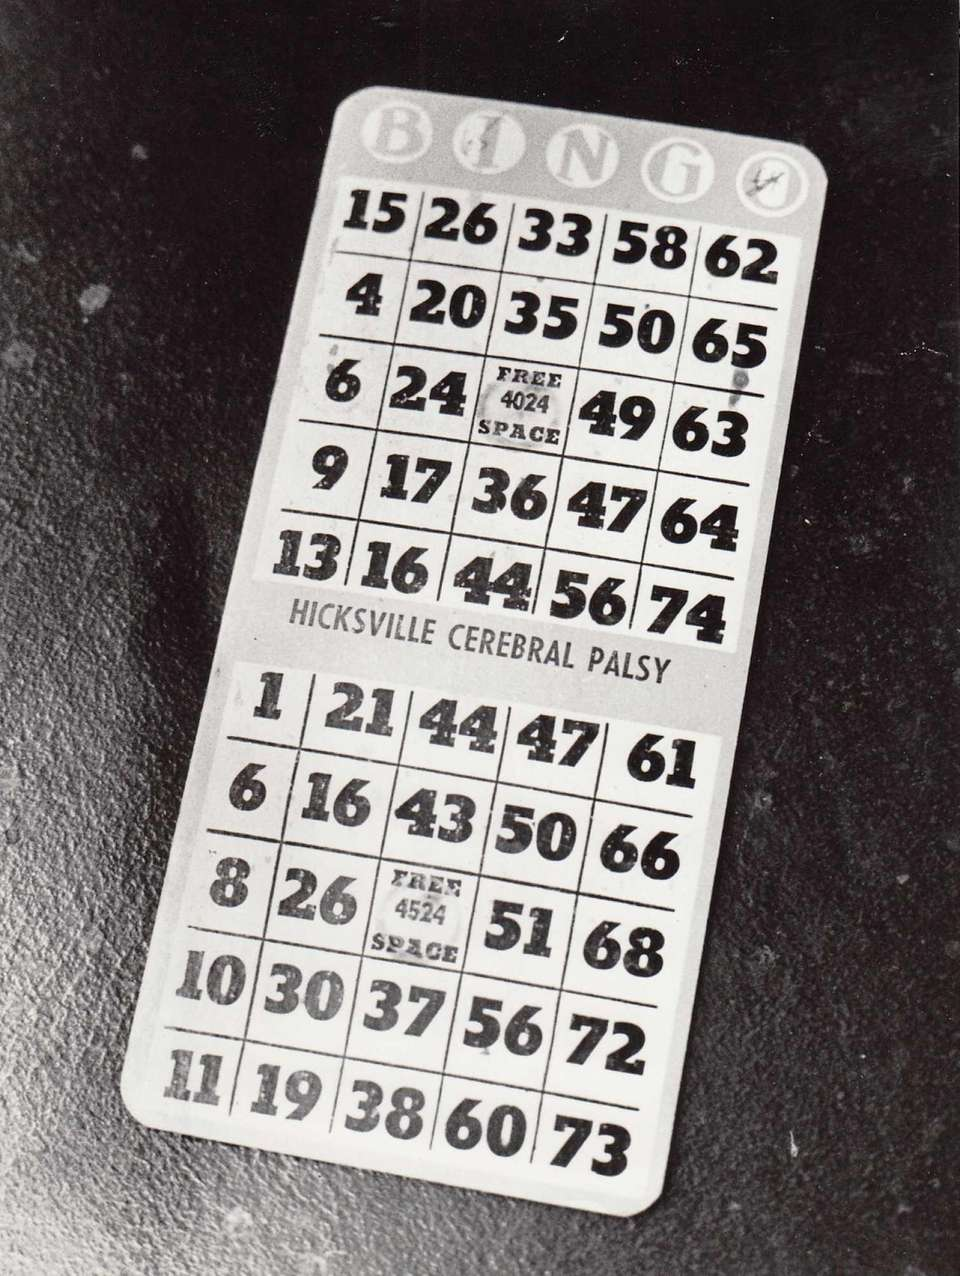 Bingo card from the Lion's Den Bingo Hall